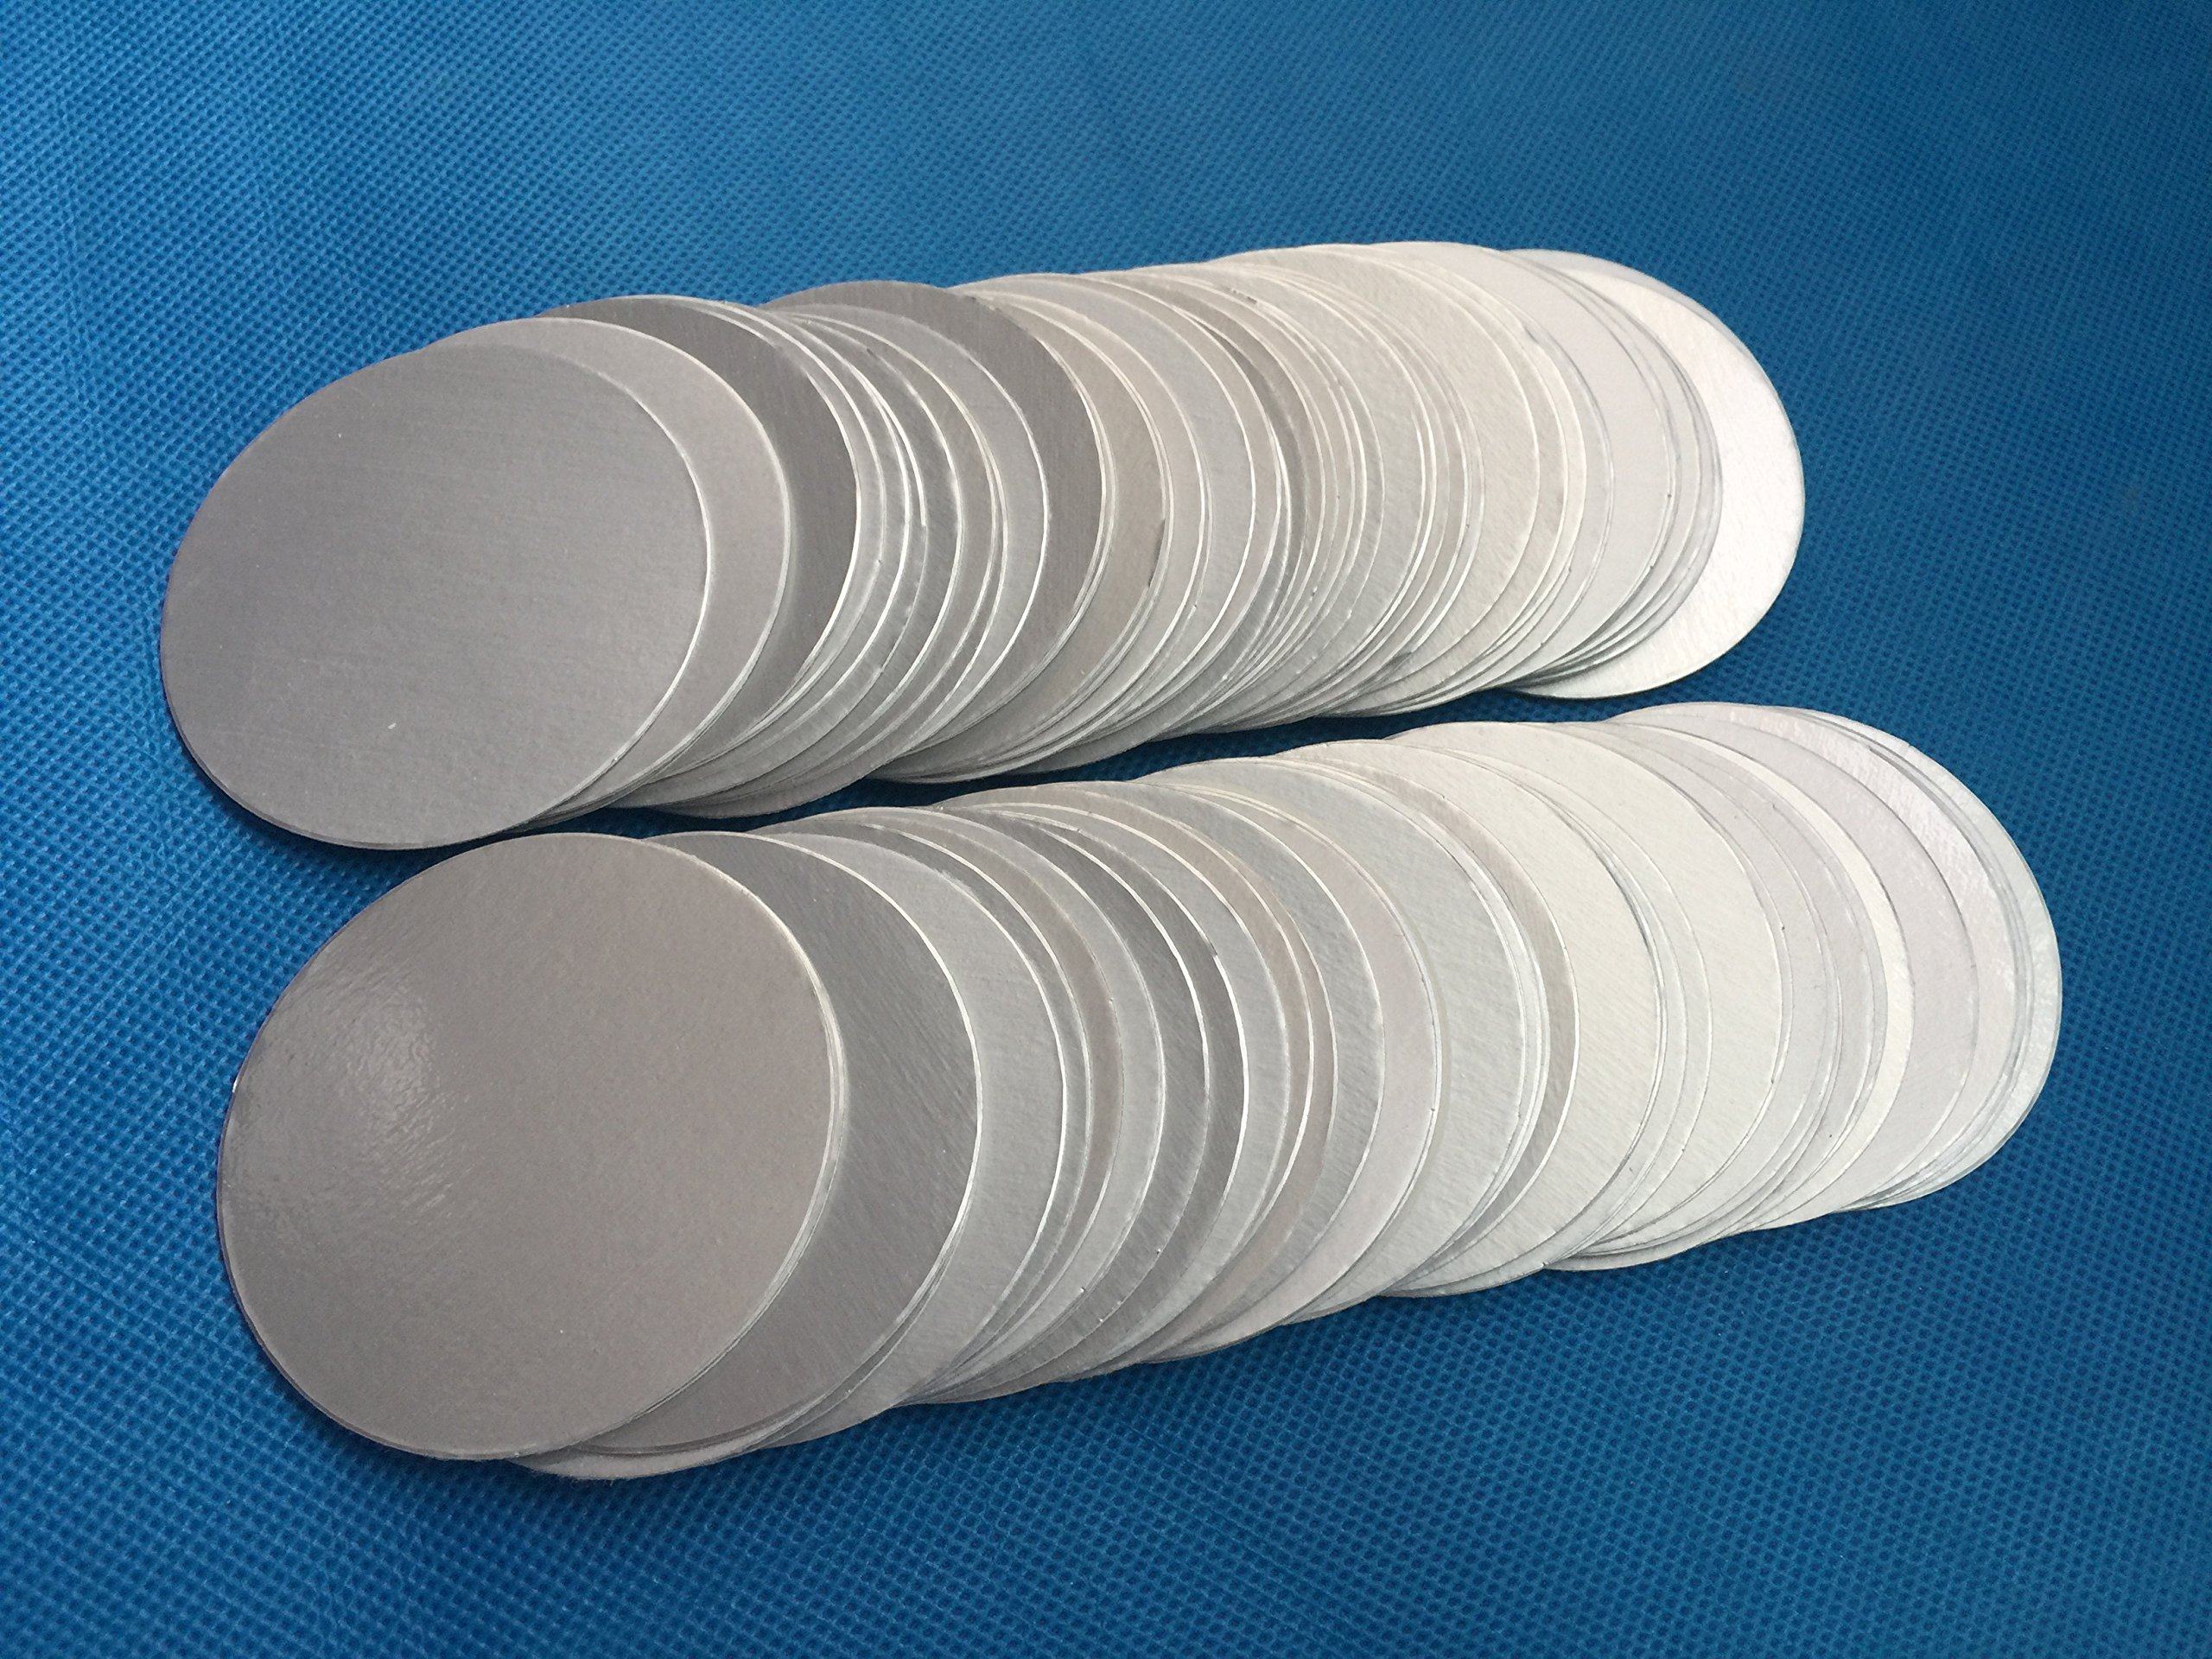 Uuni-WT HDPE bottle cap 69mm plactic laminated aluminum foil lid liners (5000pcs)